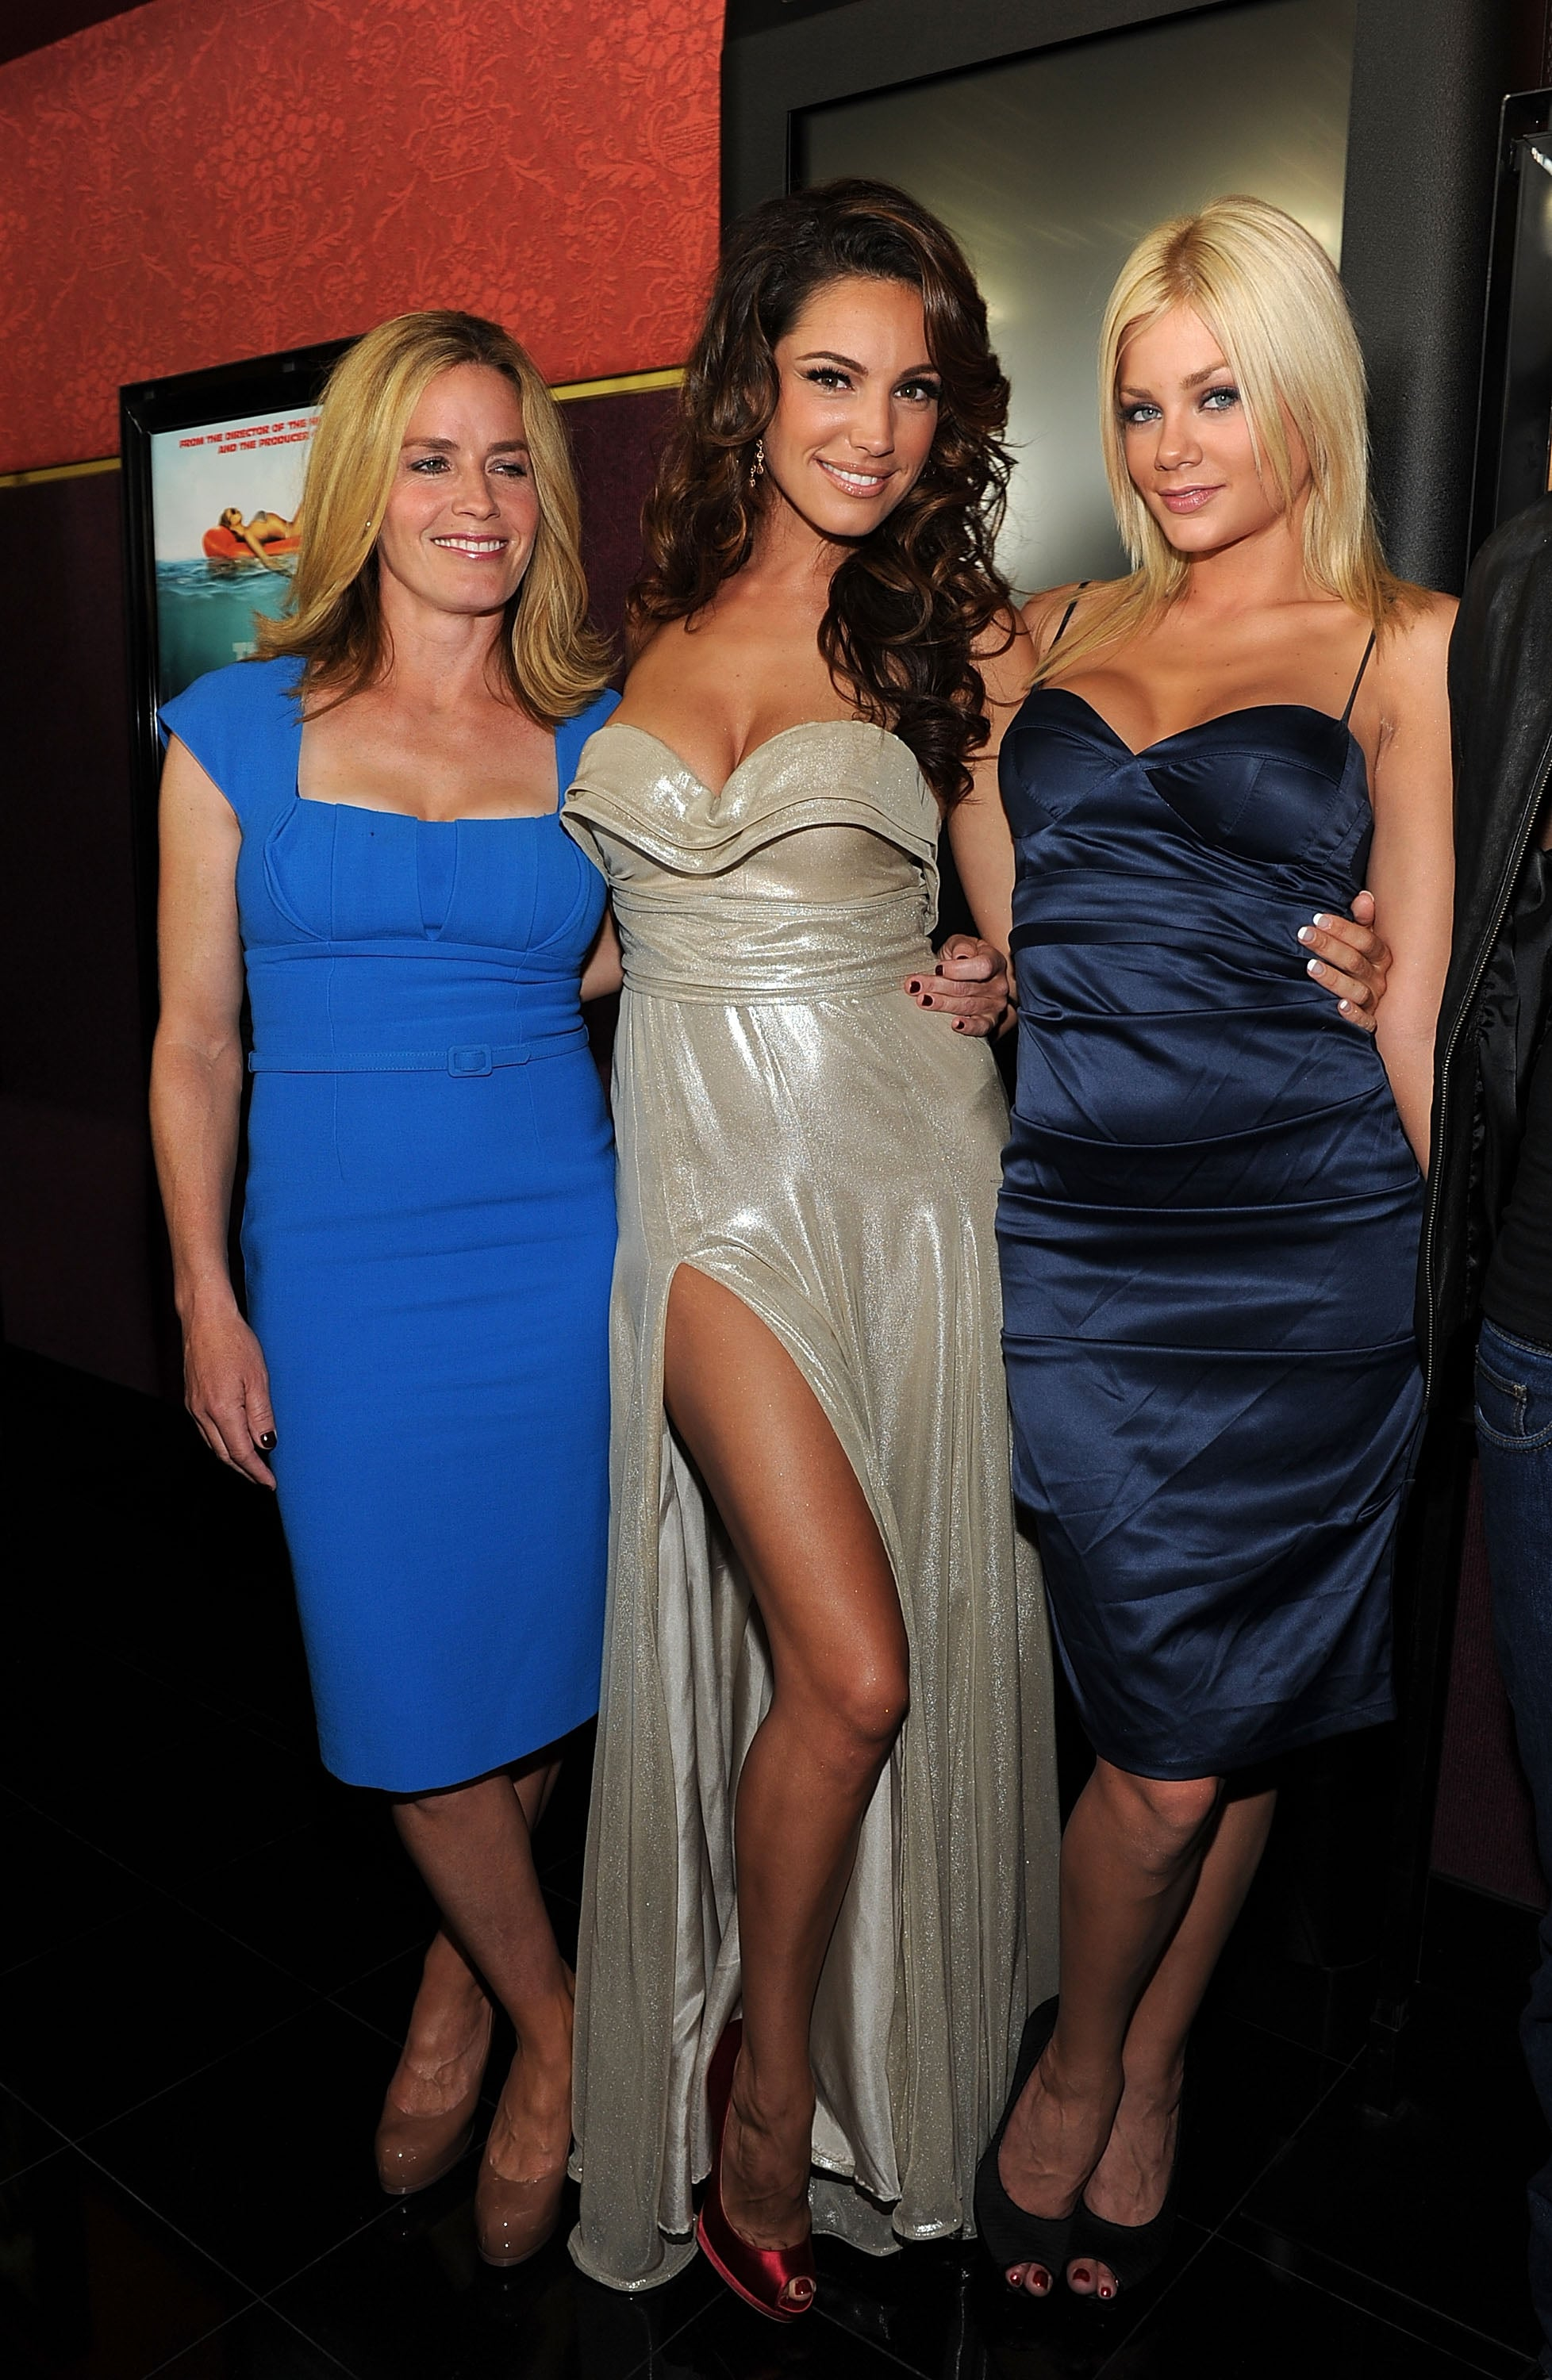 Pictures Of Piranha 3D Premiere Inc Kelly Brooks Naked Month, Jessica Szohr, Riley -8956